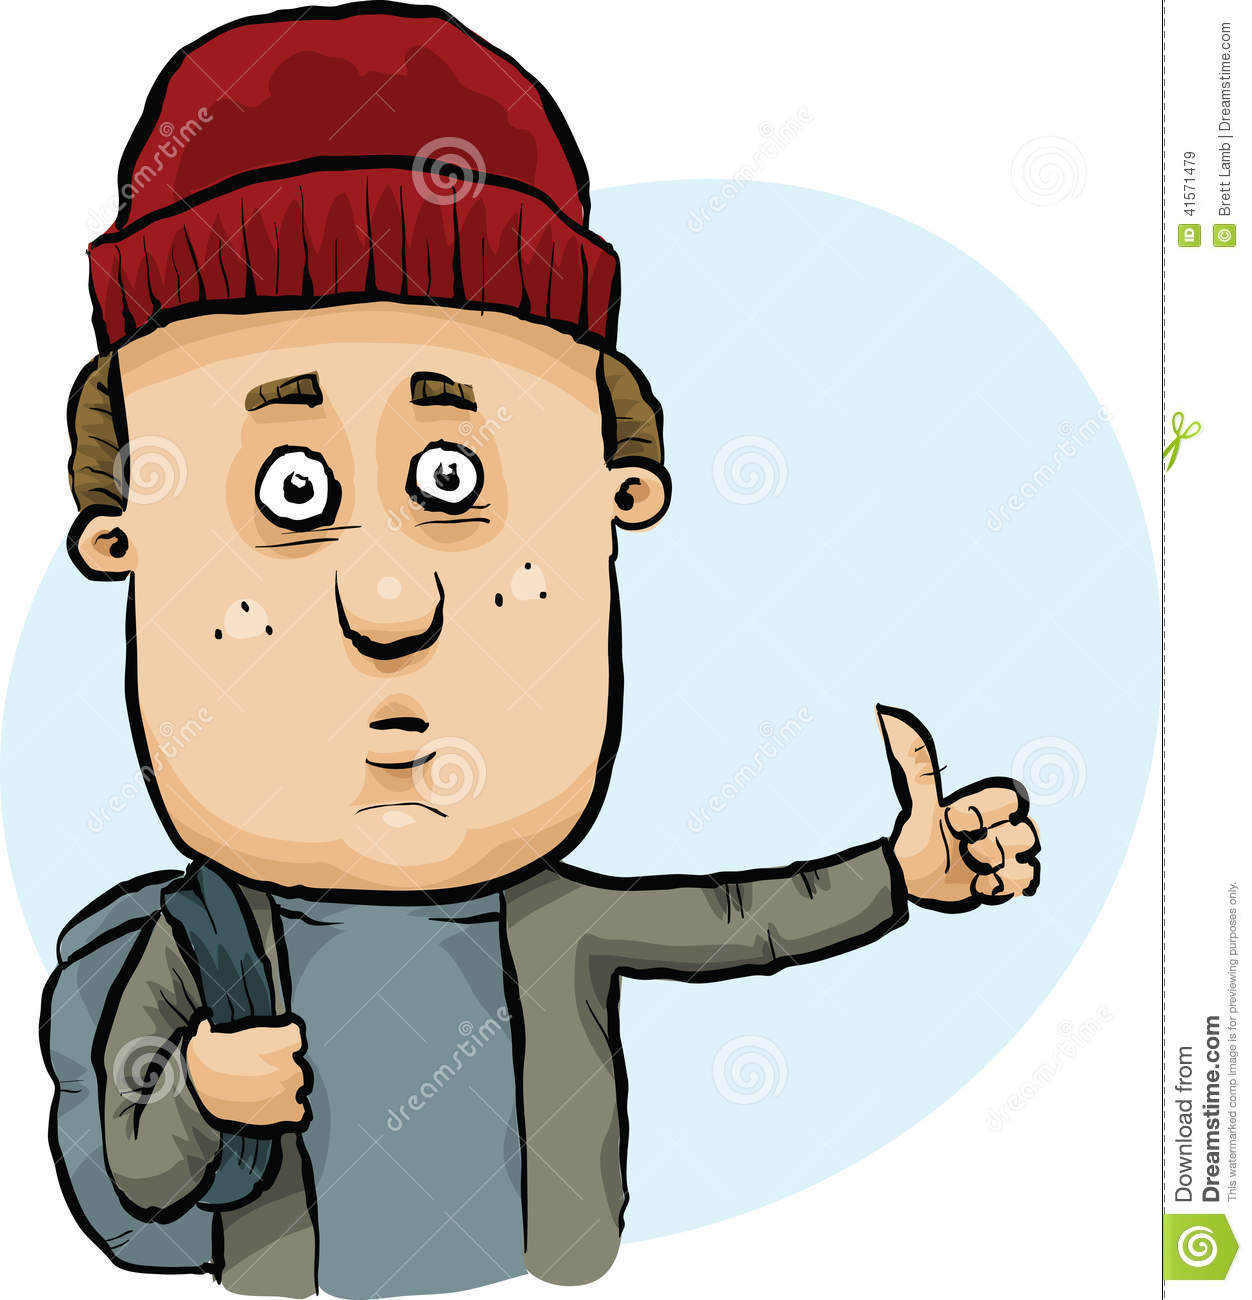 Image result for a cartoon of a hitchhiker